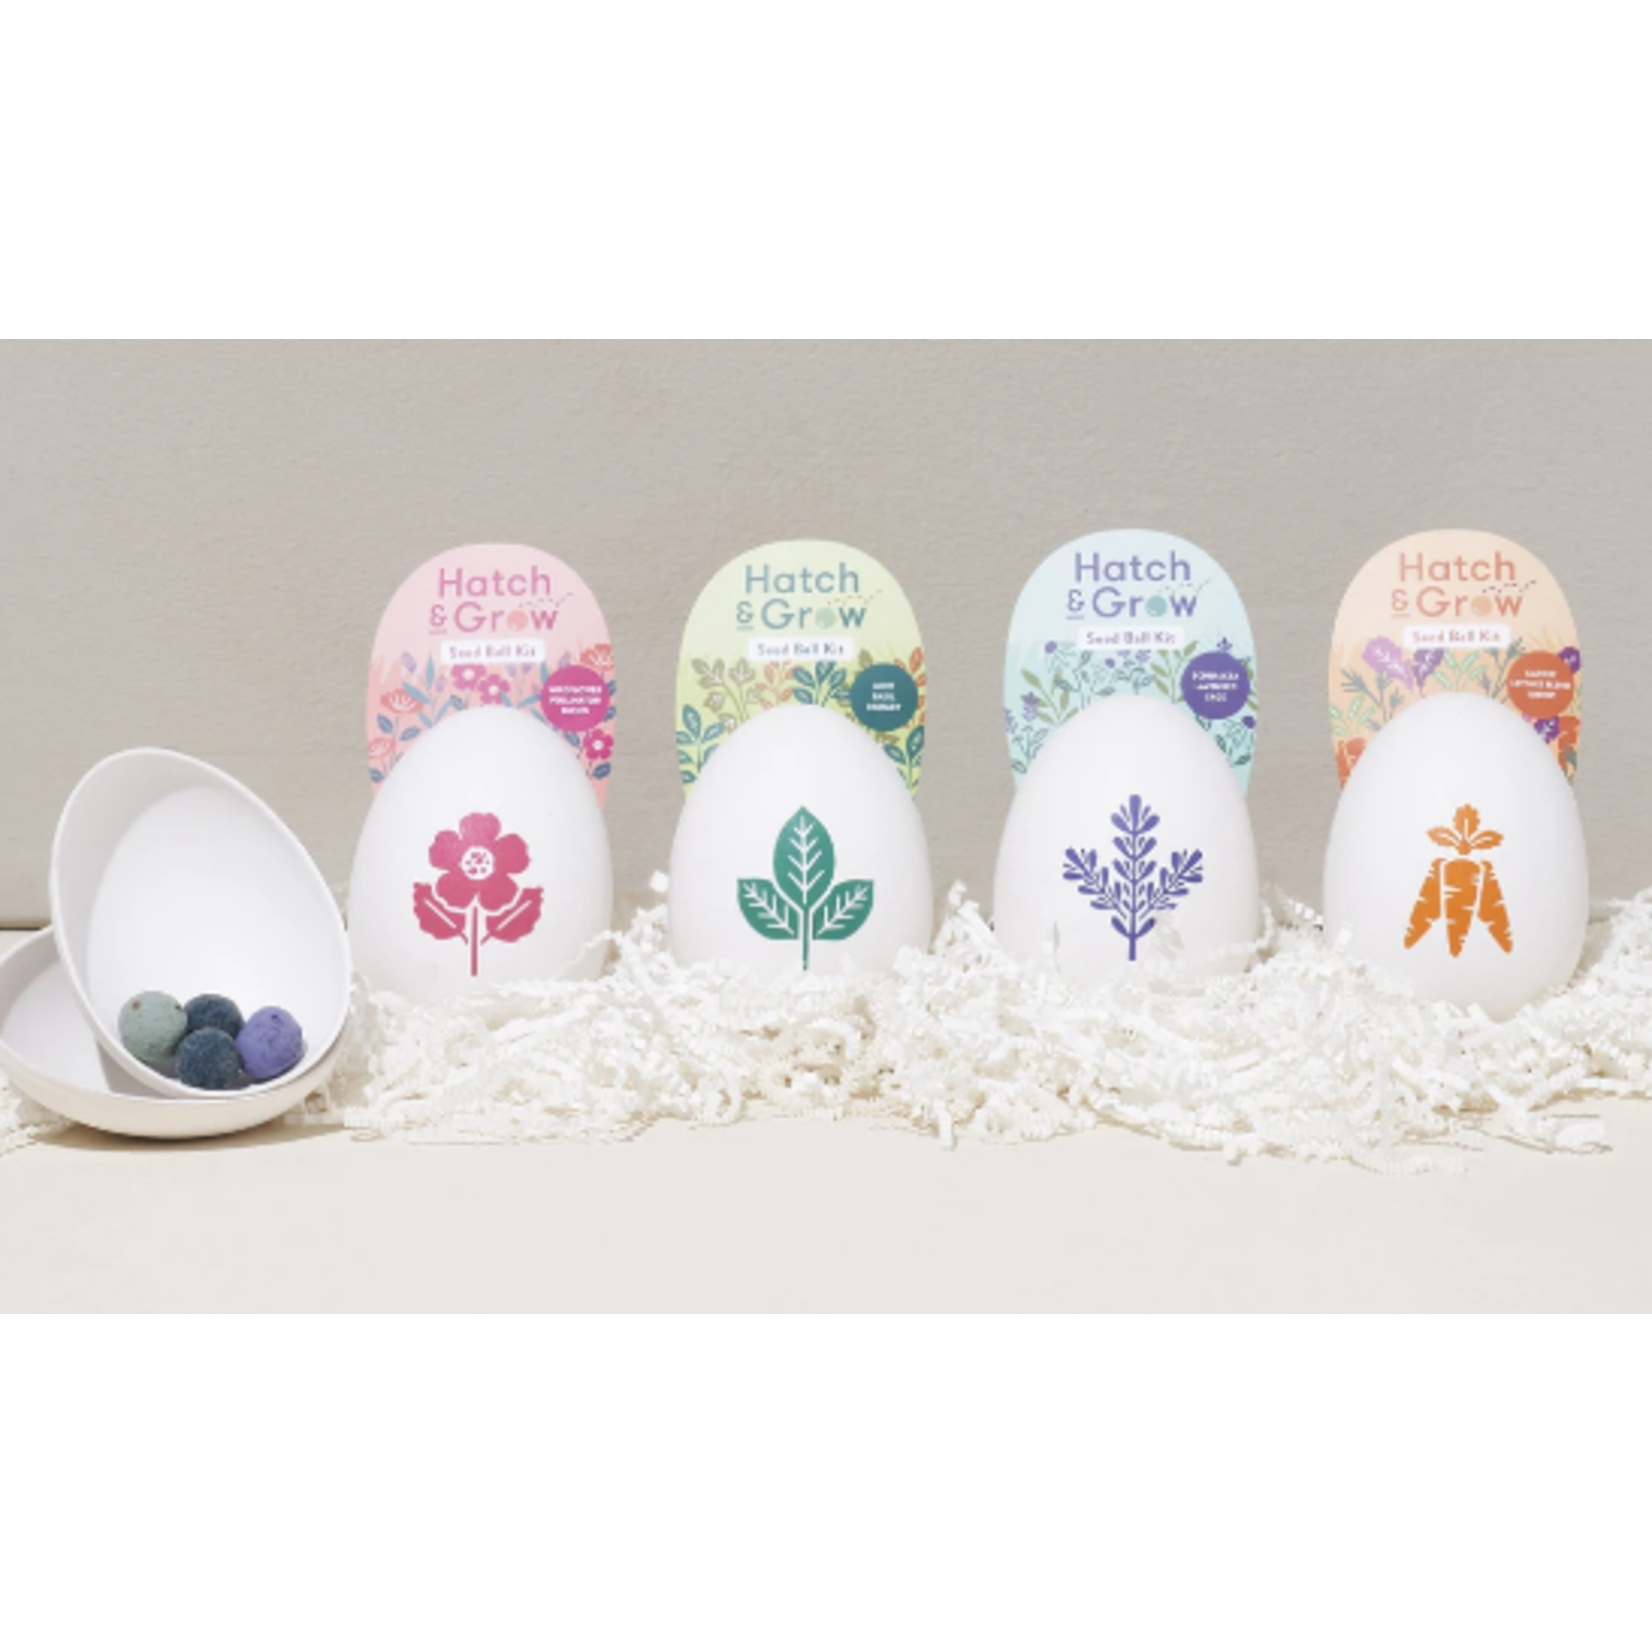 Modern Sprout Hatch & Grow Seed Ball Kits